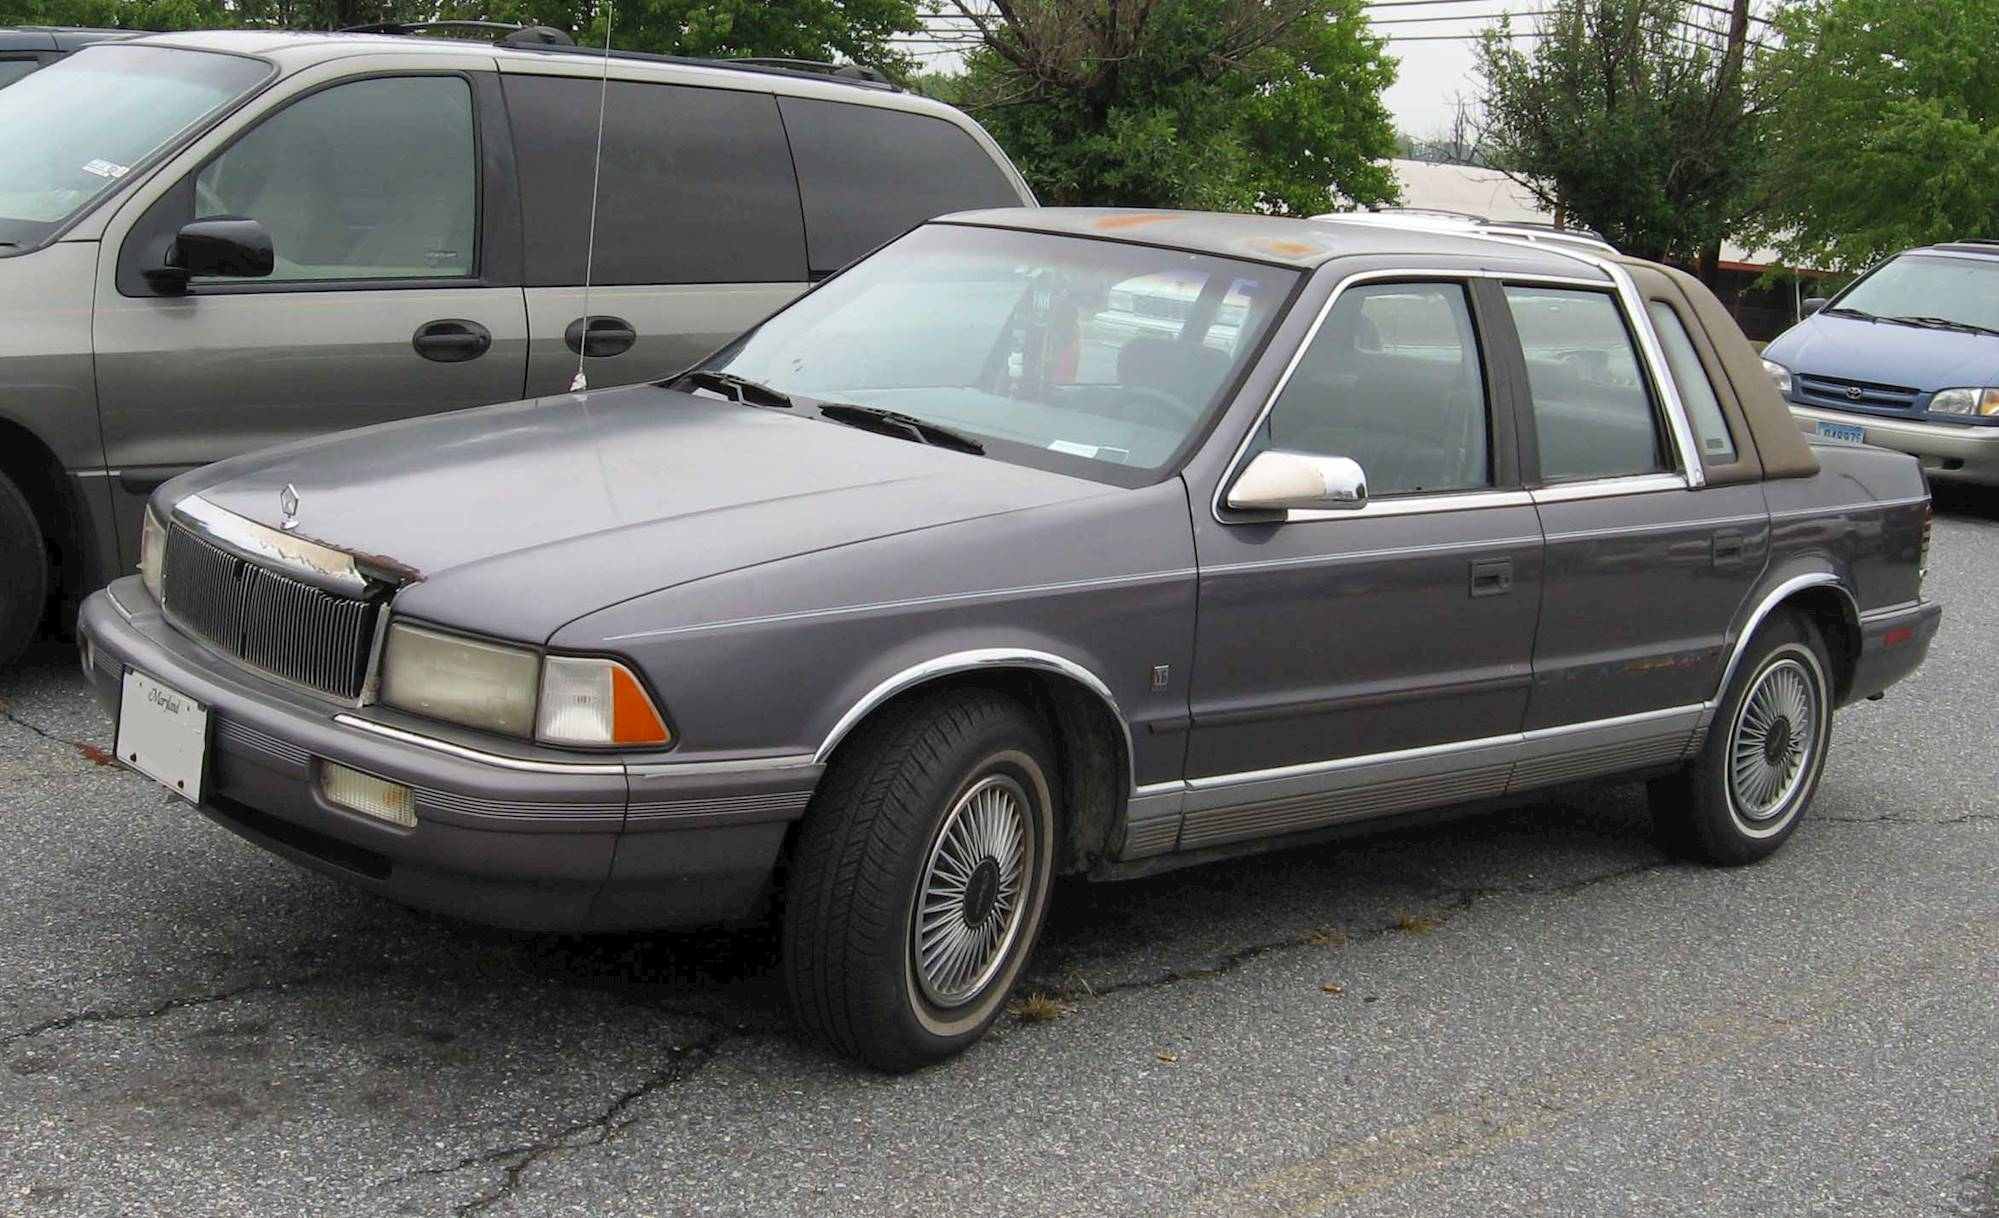 Jpg Wikimedia Commons Chrysler Lebaron